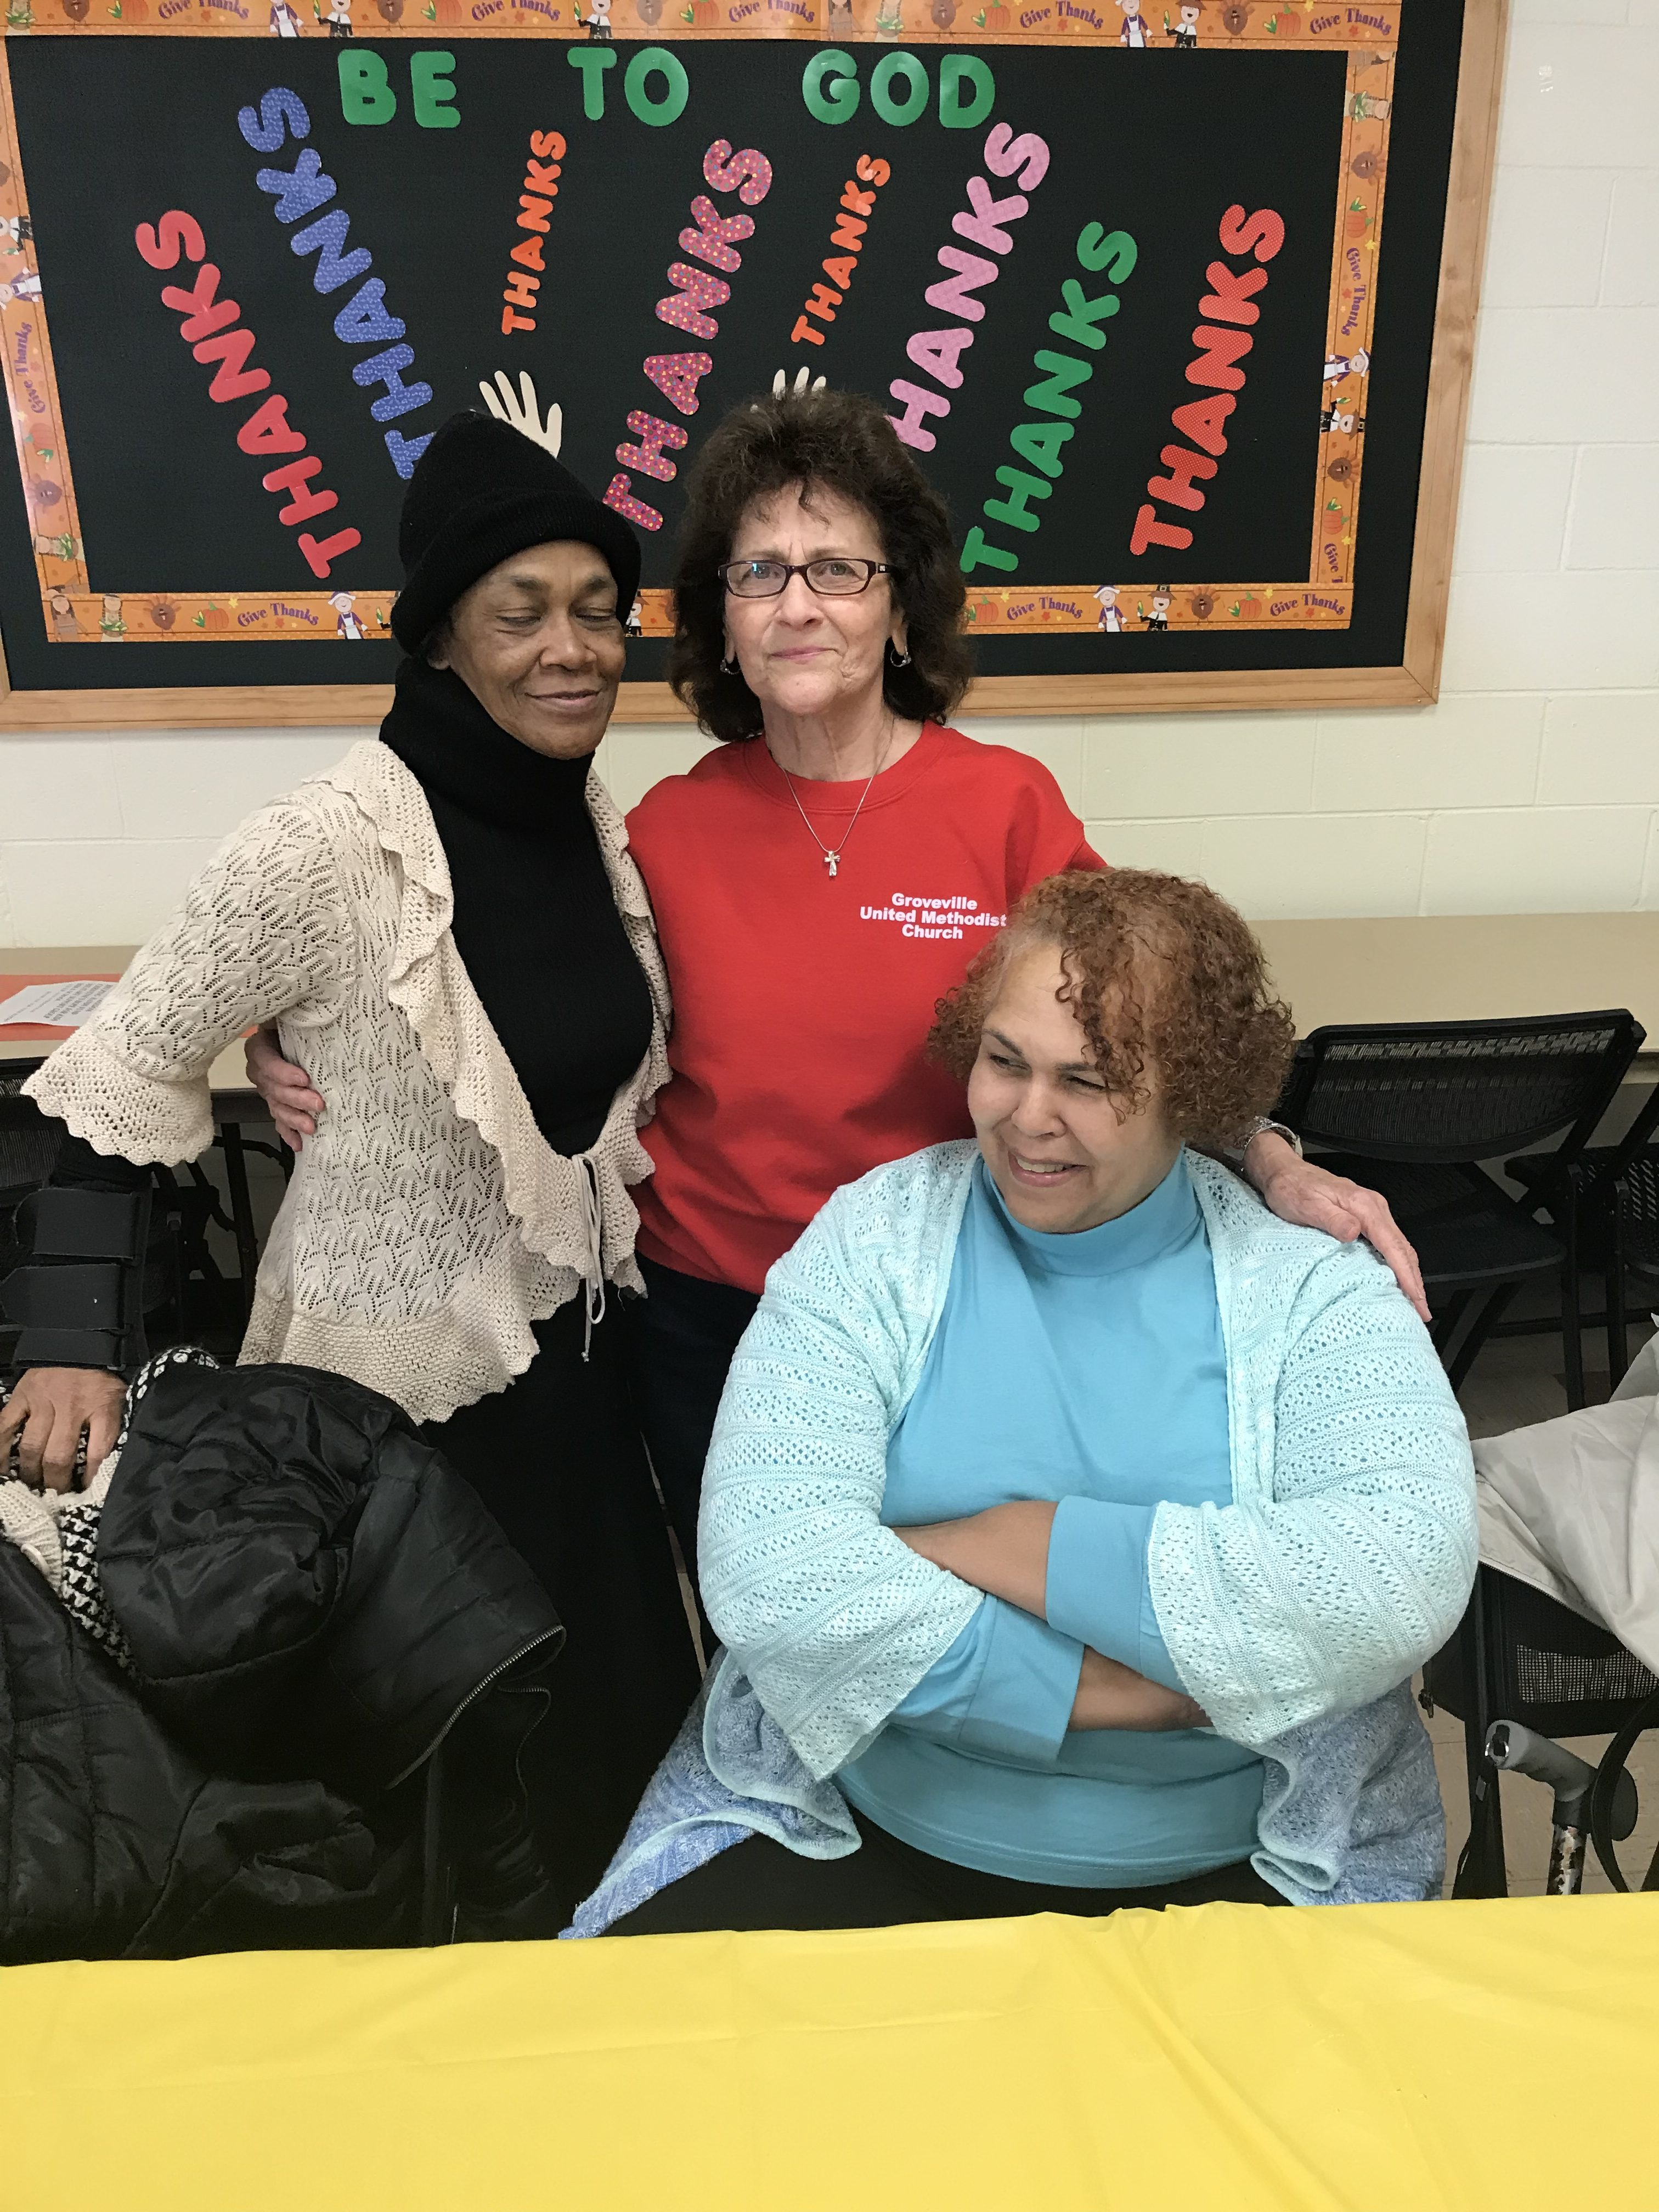 Day of Giving with Groveville UMC-12